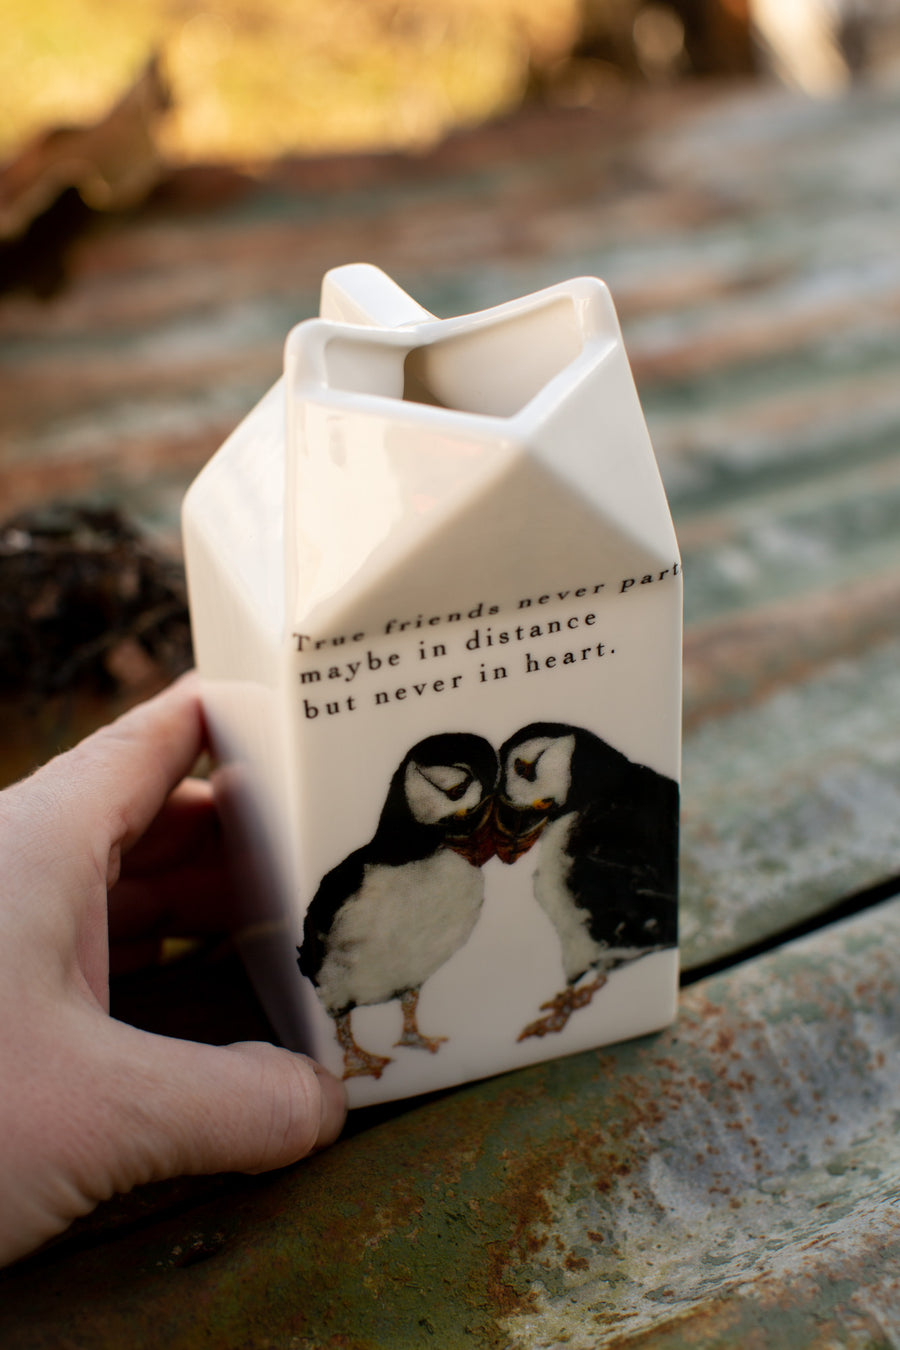 Puffin mugs and jugs